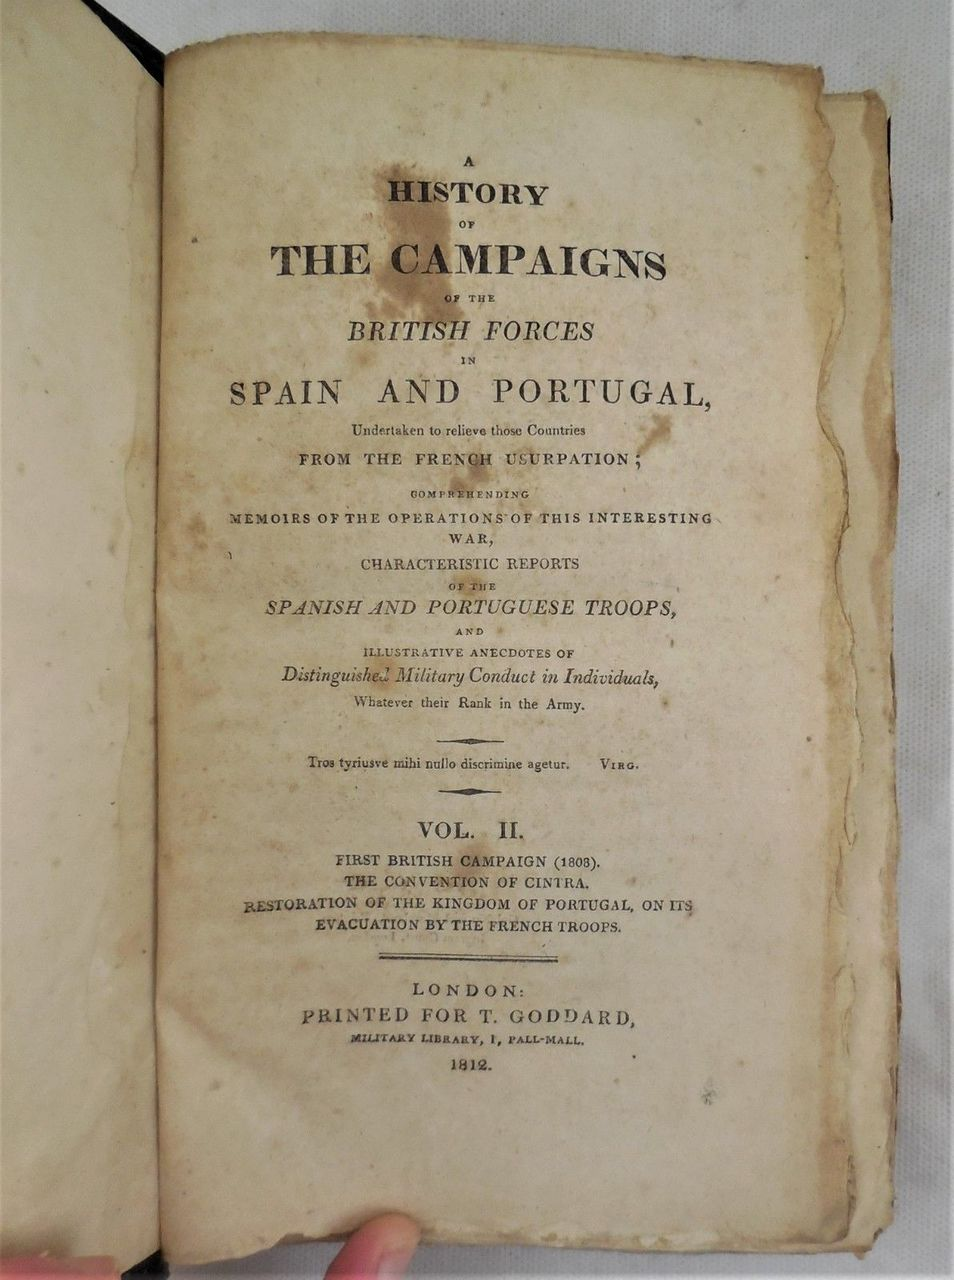 HISTORY OF THE CAMPAIGNS OF THE BRITISH FORCES IN SPAIN AND PORTUGAL, ed. by T. Goddard - 1812 [4 Vols, 1st Ed]